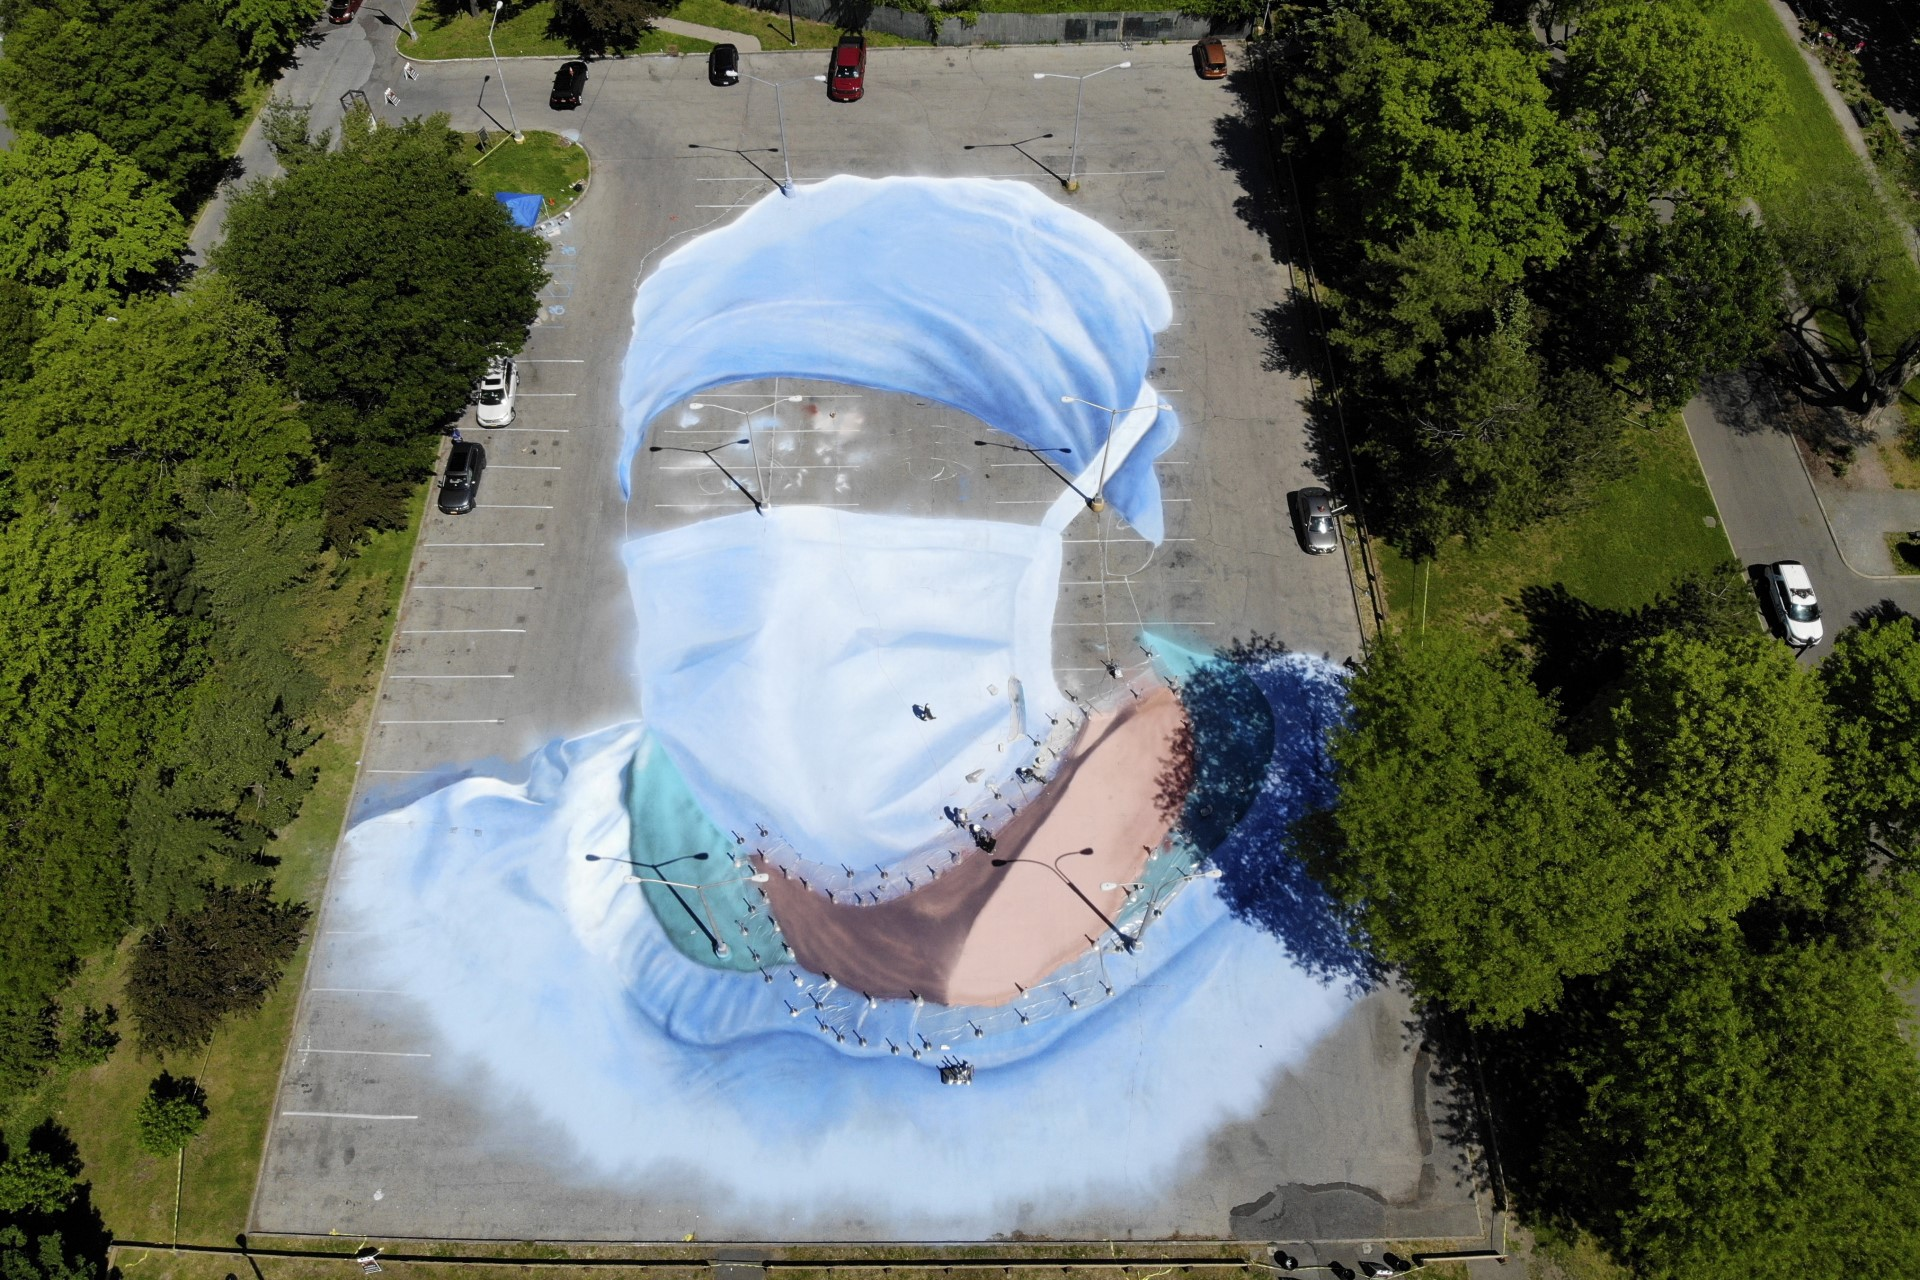 Street art in times of a pandemic